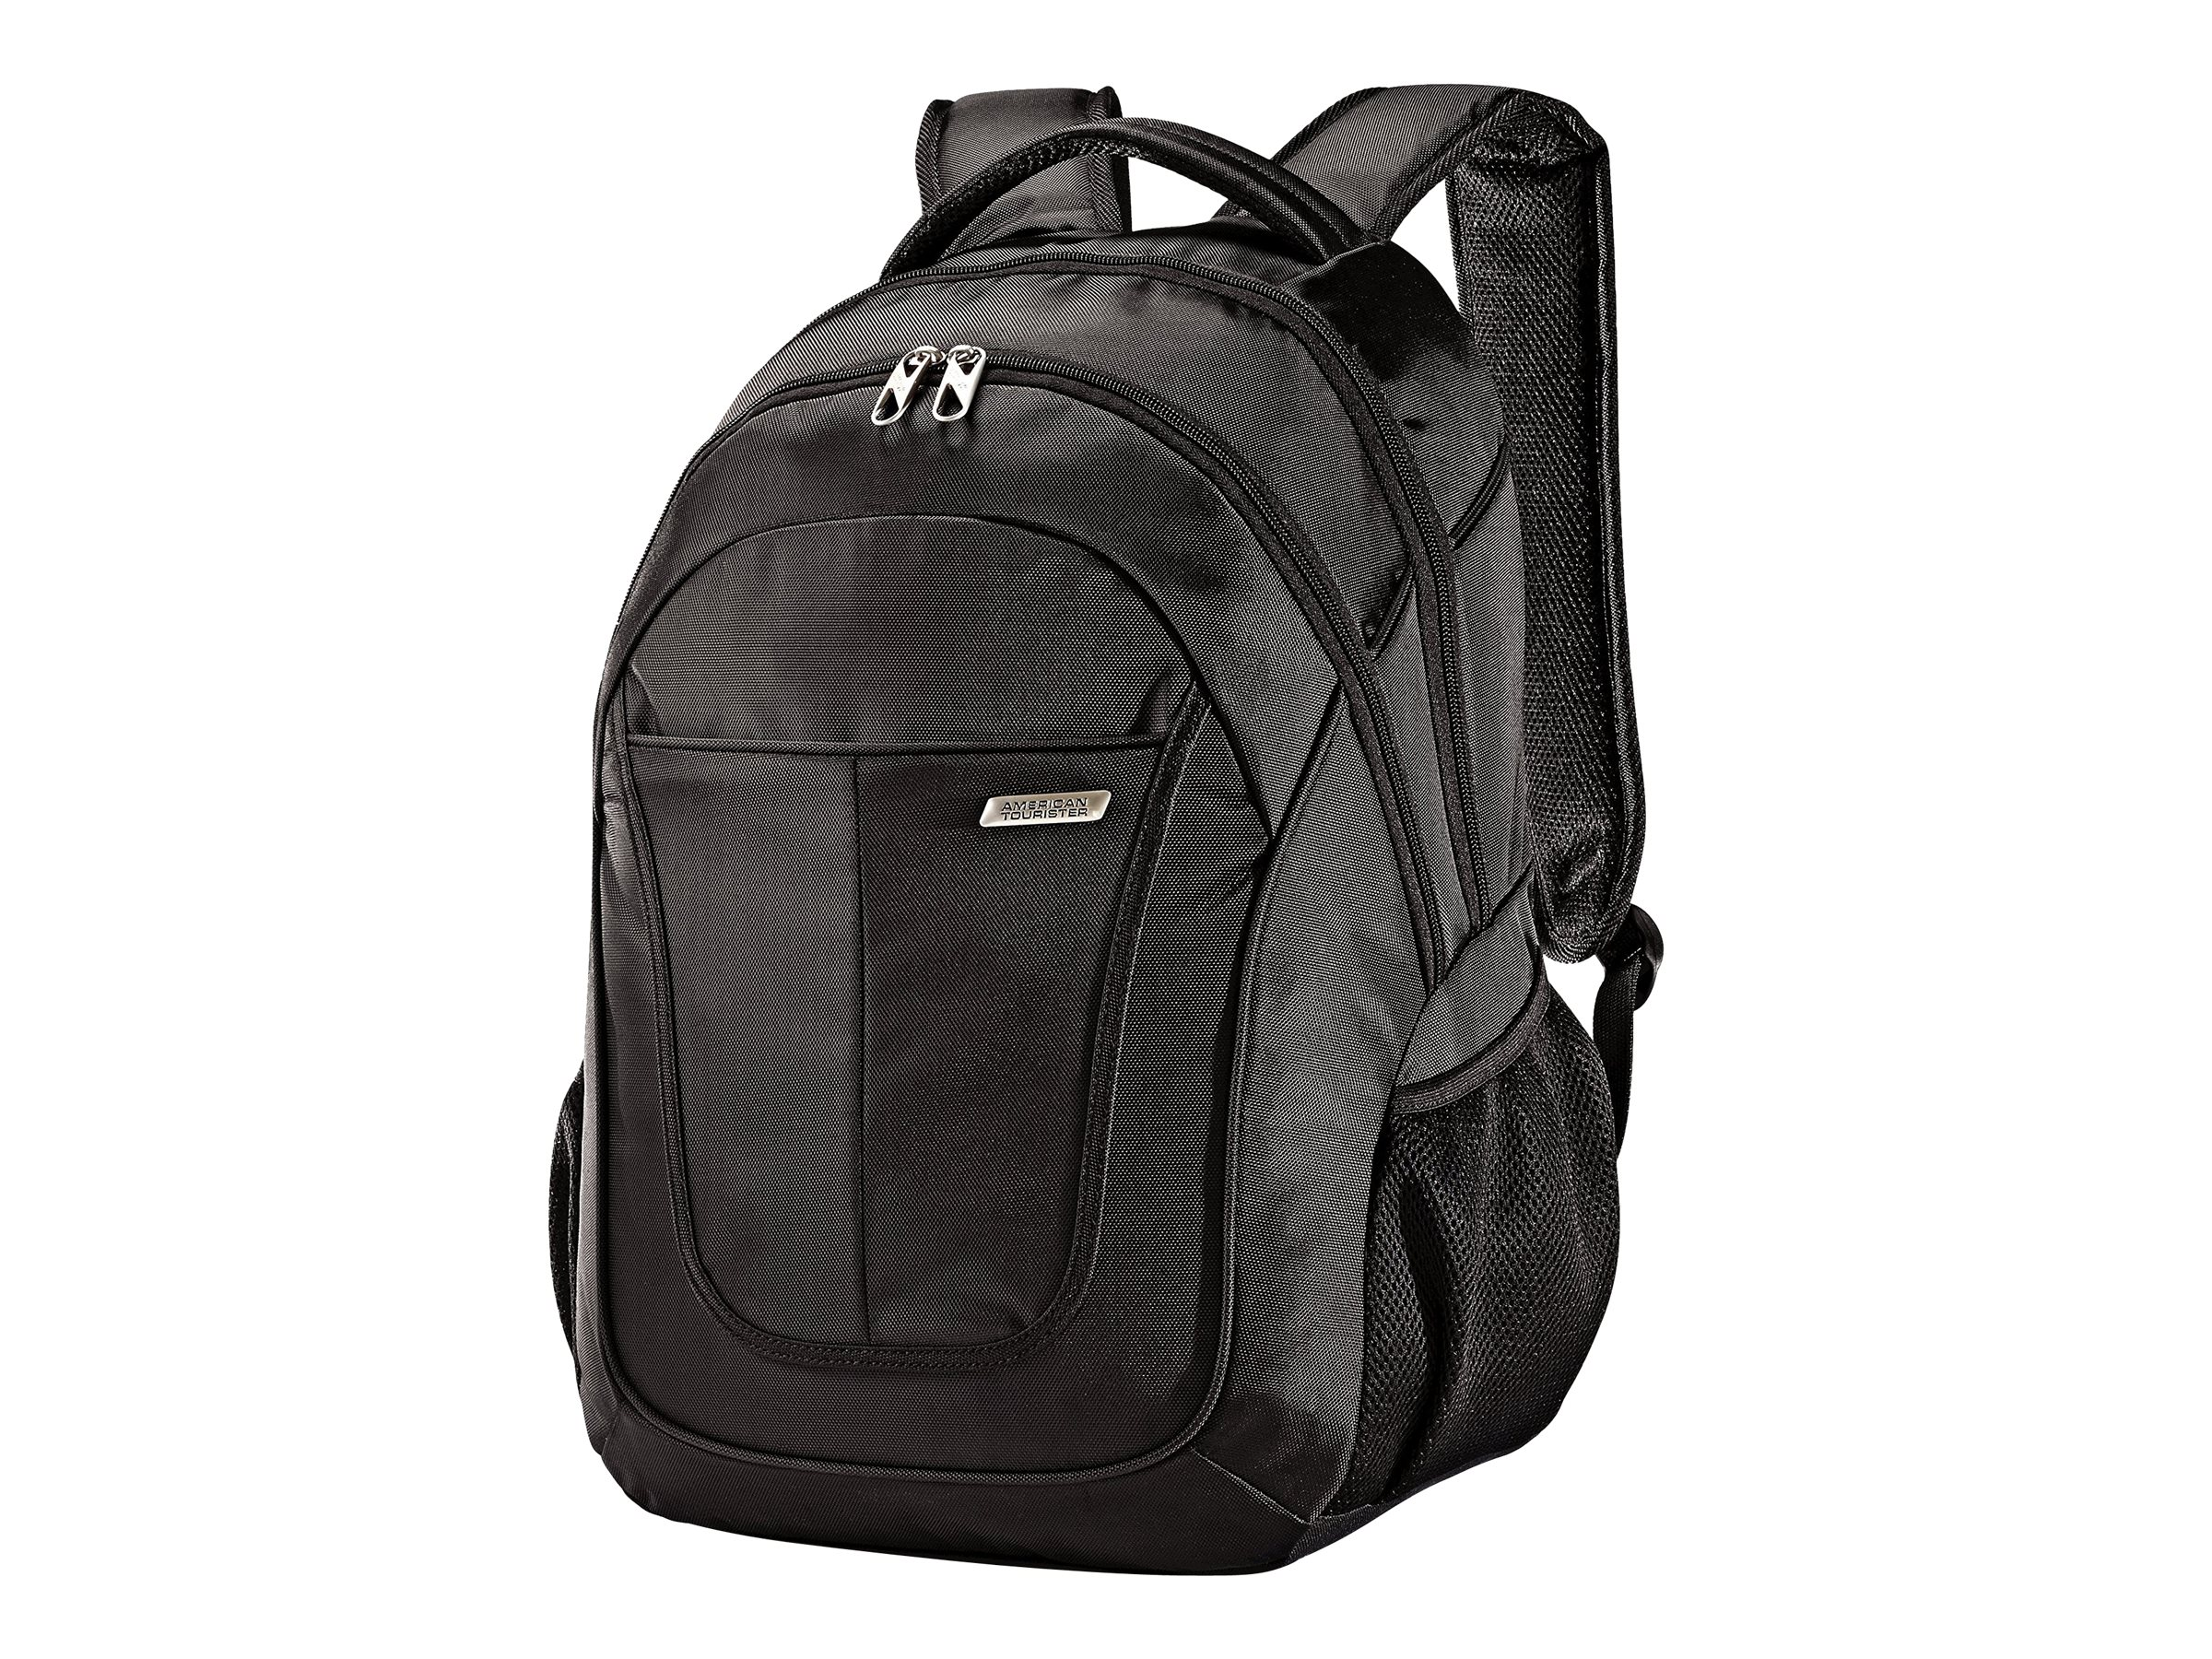 Stephen Gould 15.6 Backpack, Durable 840 Denier Construction, 61329-1041, 17770984, Carrying Cases - Other